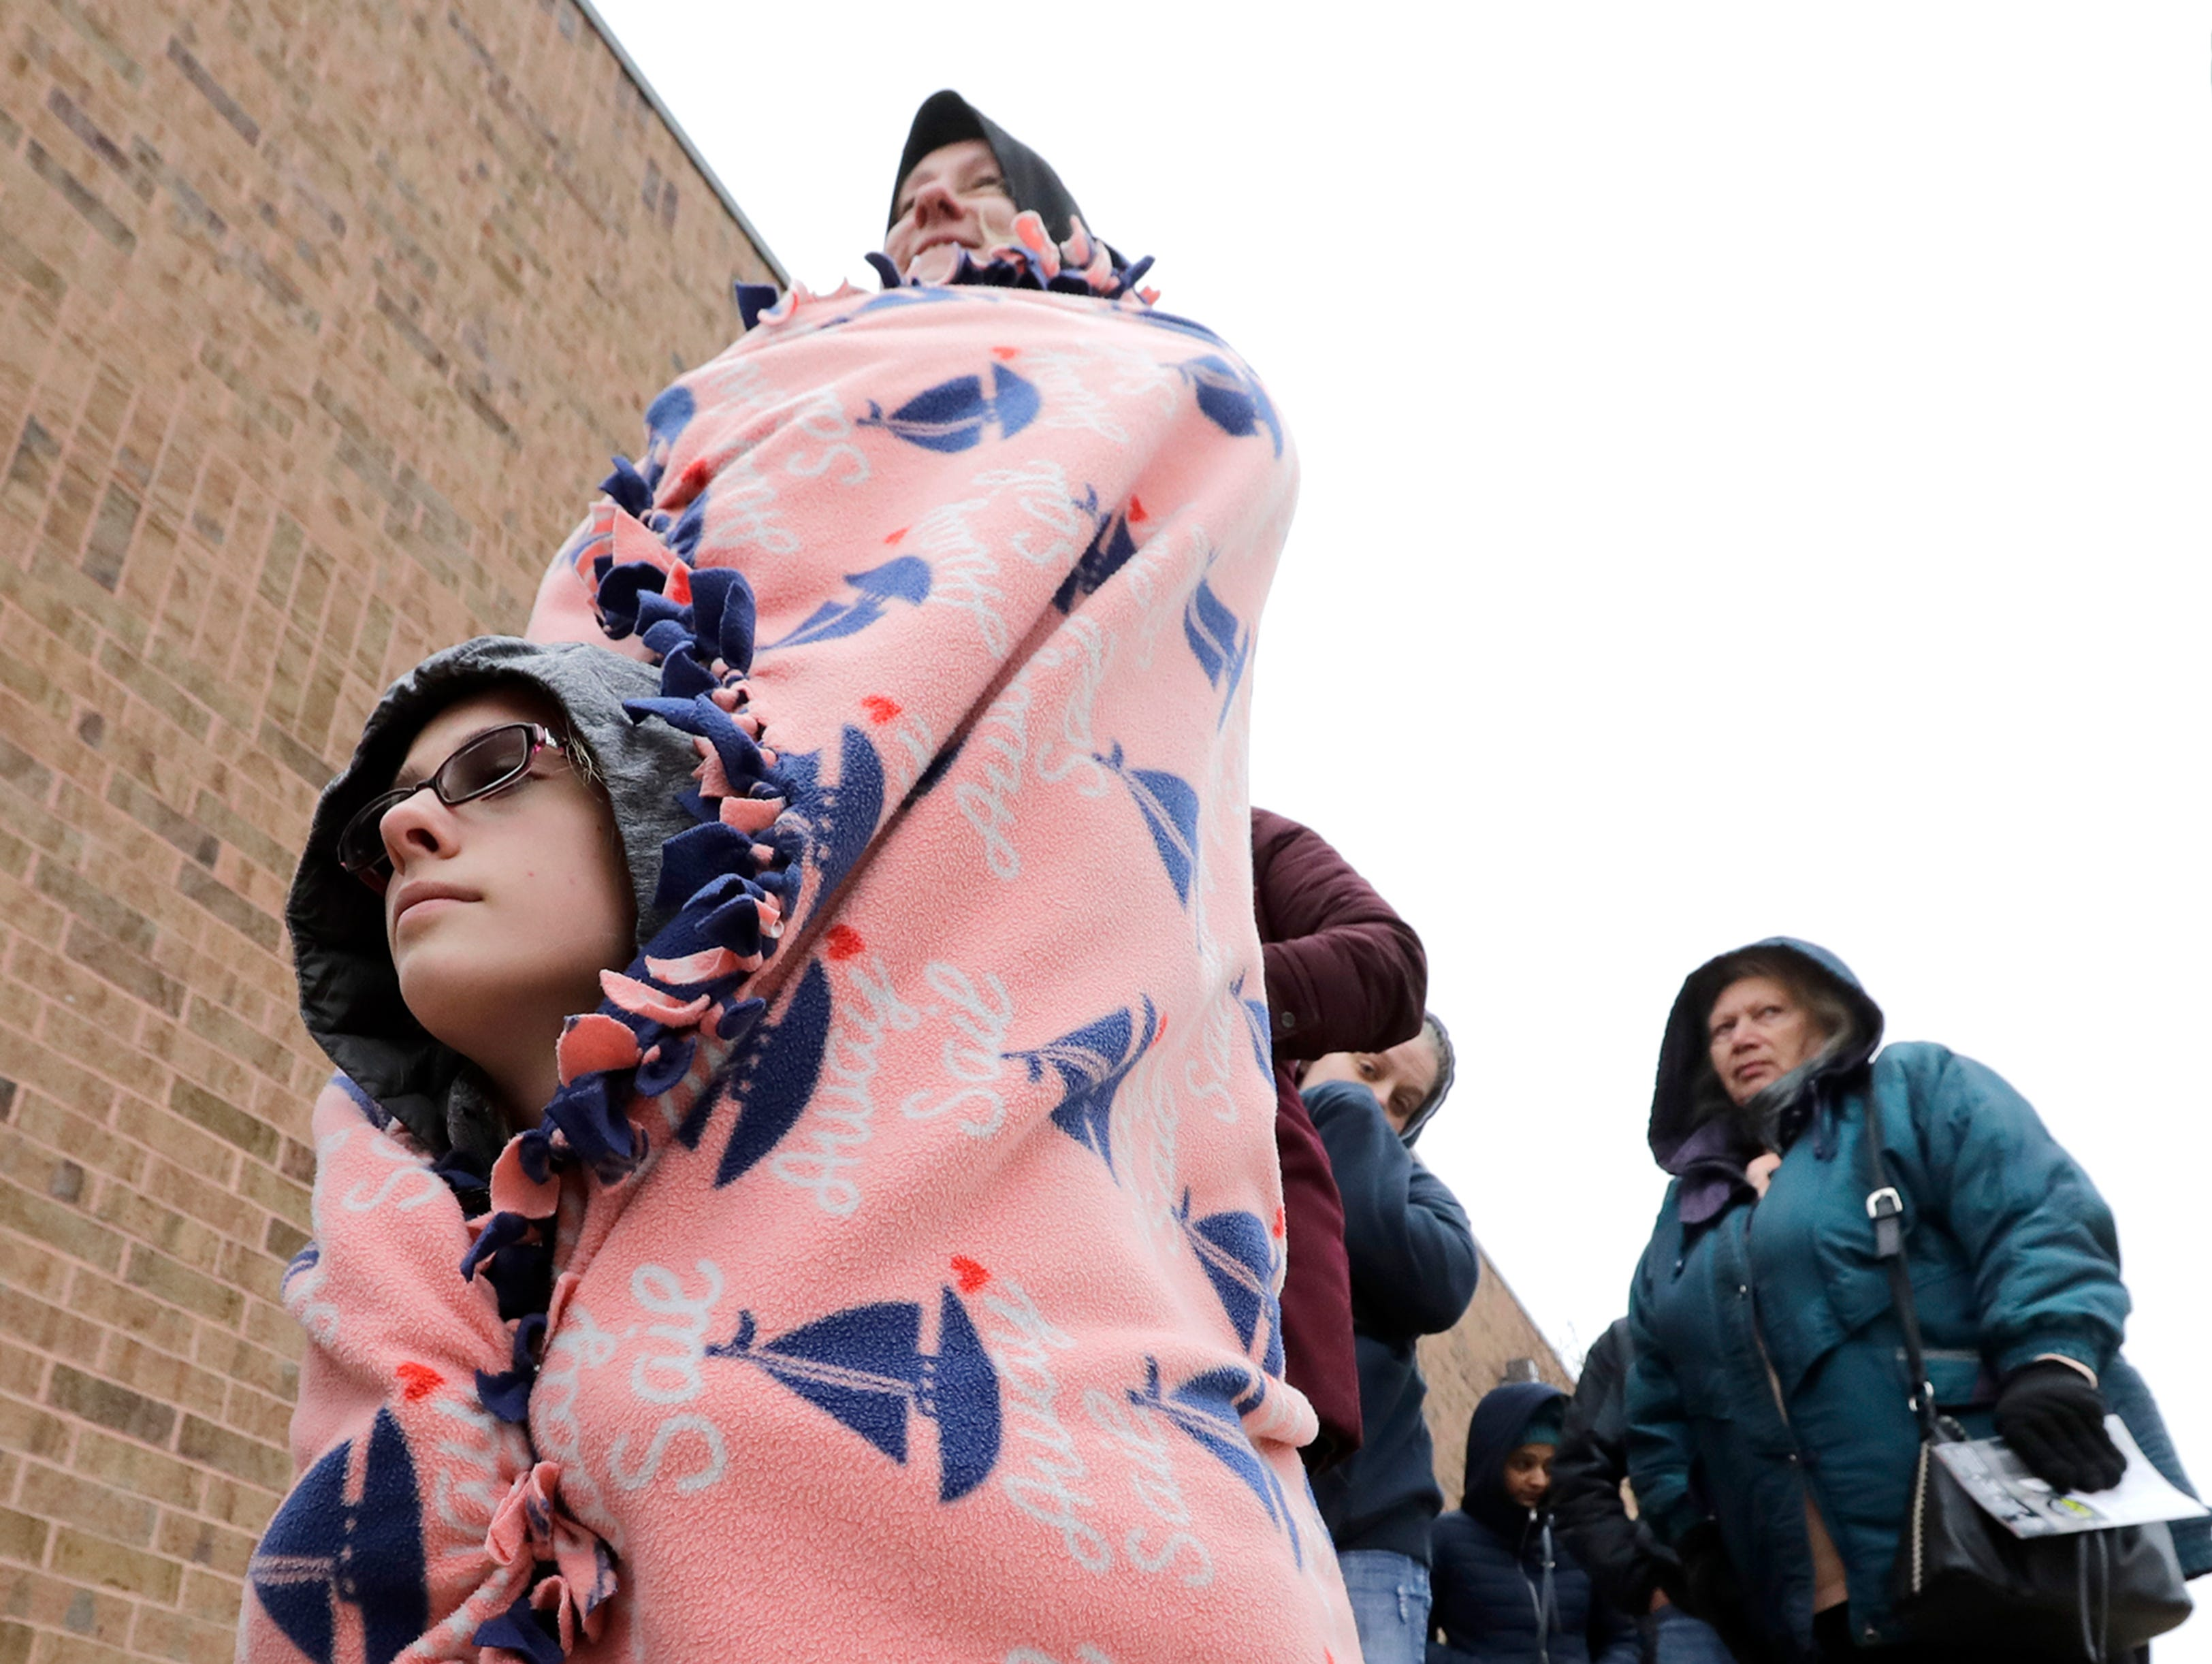 Jennifer Diedrick, bottom, tries to stay warm by crouching under her mother Sadie Diedrick's blanket while waiting in line at JCPenney for Black Friday deals Thursday, November 22, 2018, in Grand Chute, Wis. The two are from Appleton.